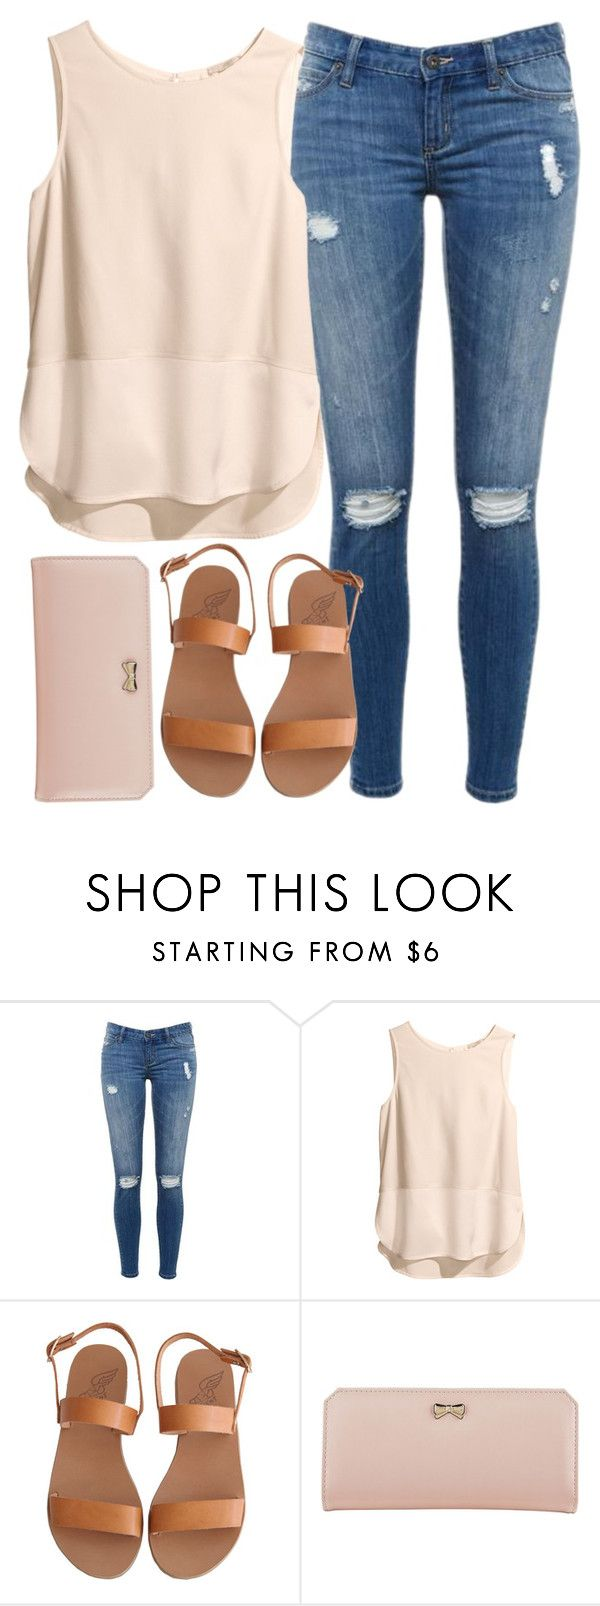 Mariel By Dreamtoparis  E2 9d A4 Liked On Polyvore Featuring Hm Ancient Greek Sandals And Zodaca